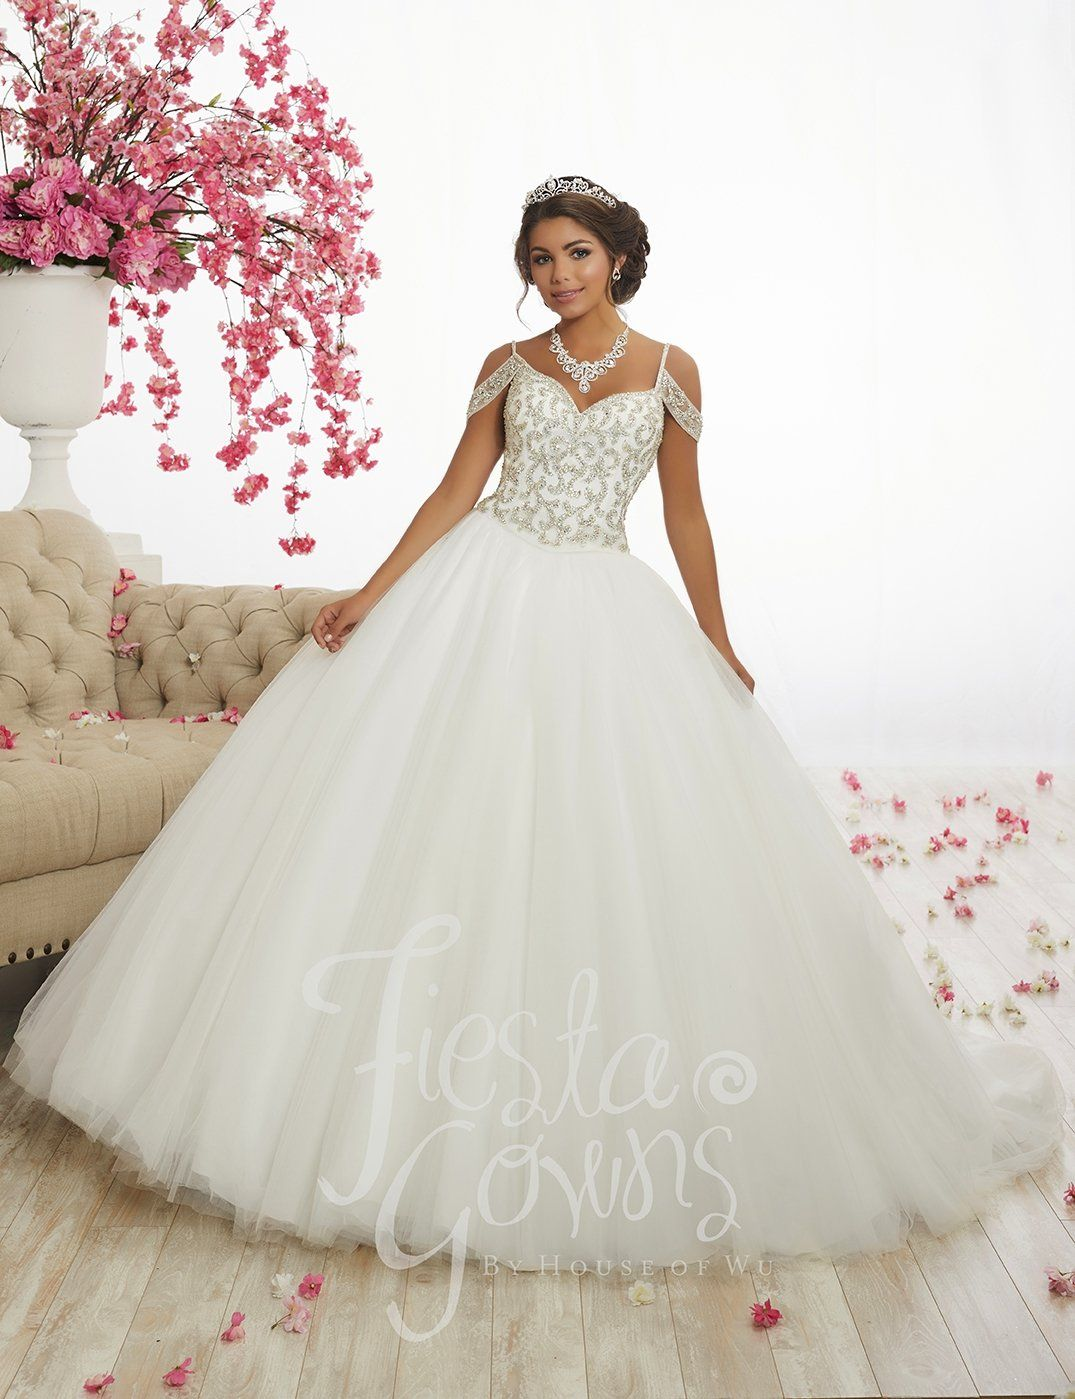 0d35c772231 Beaded Two-Piece Quinceanera Dress by Fiesta Gowns 56342 in 2019 ...